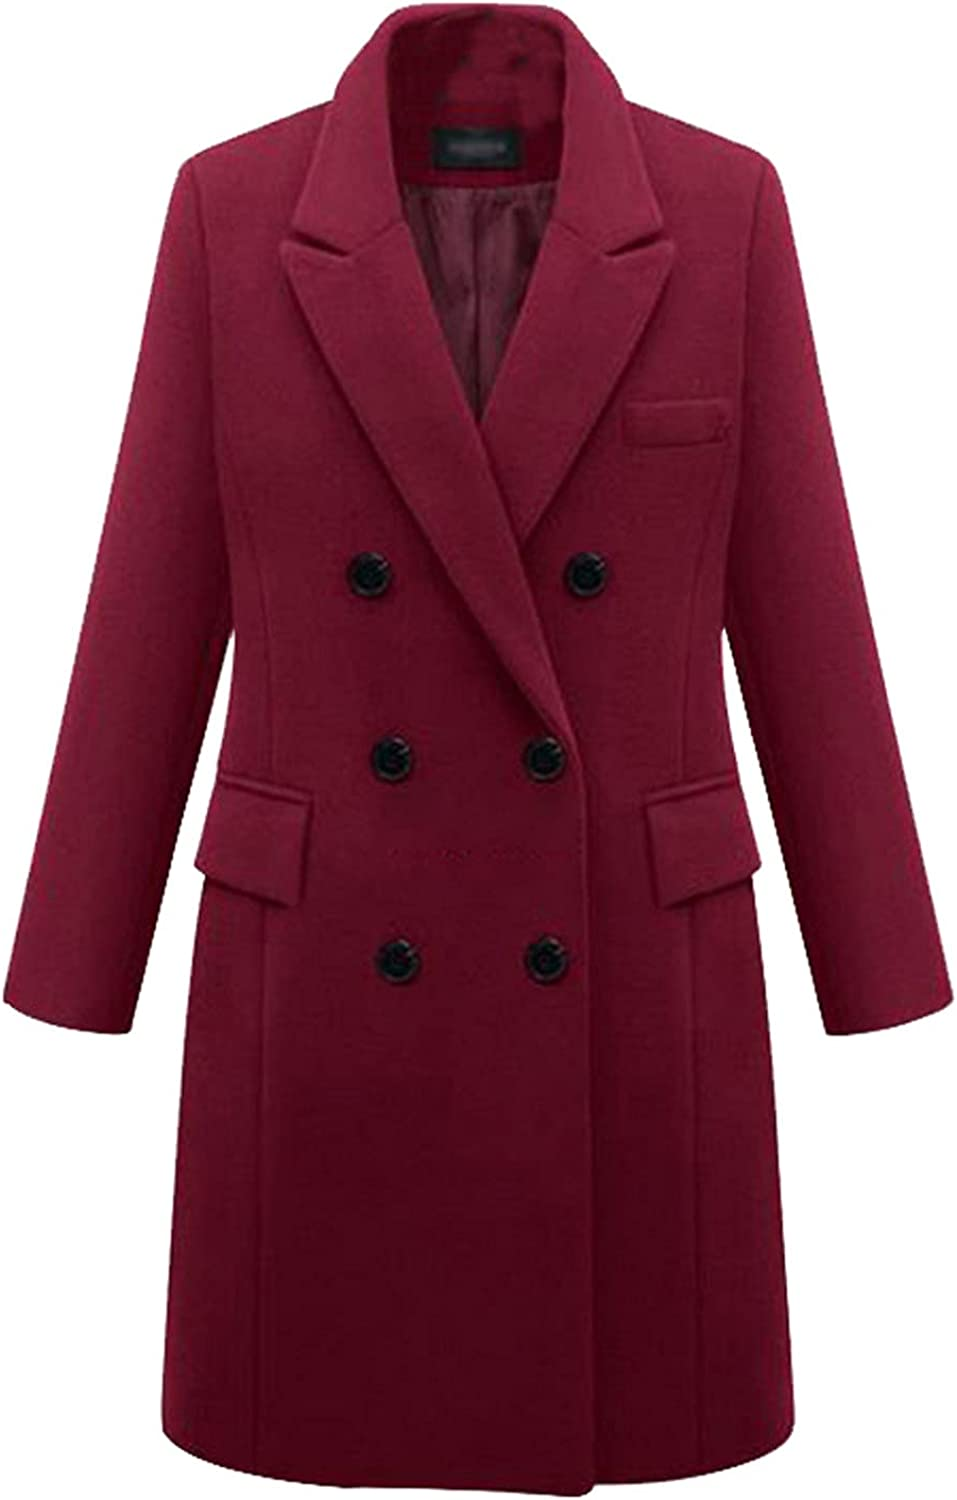 Fashion Jacket Coat Women's Solid Double Breasted Button Front Style Plus Size Coat Tops